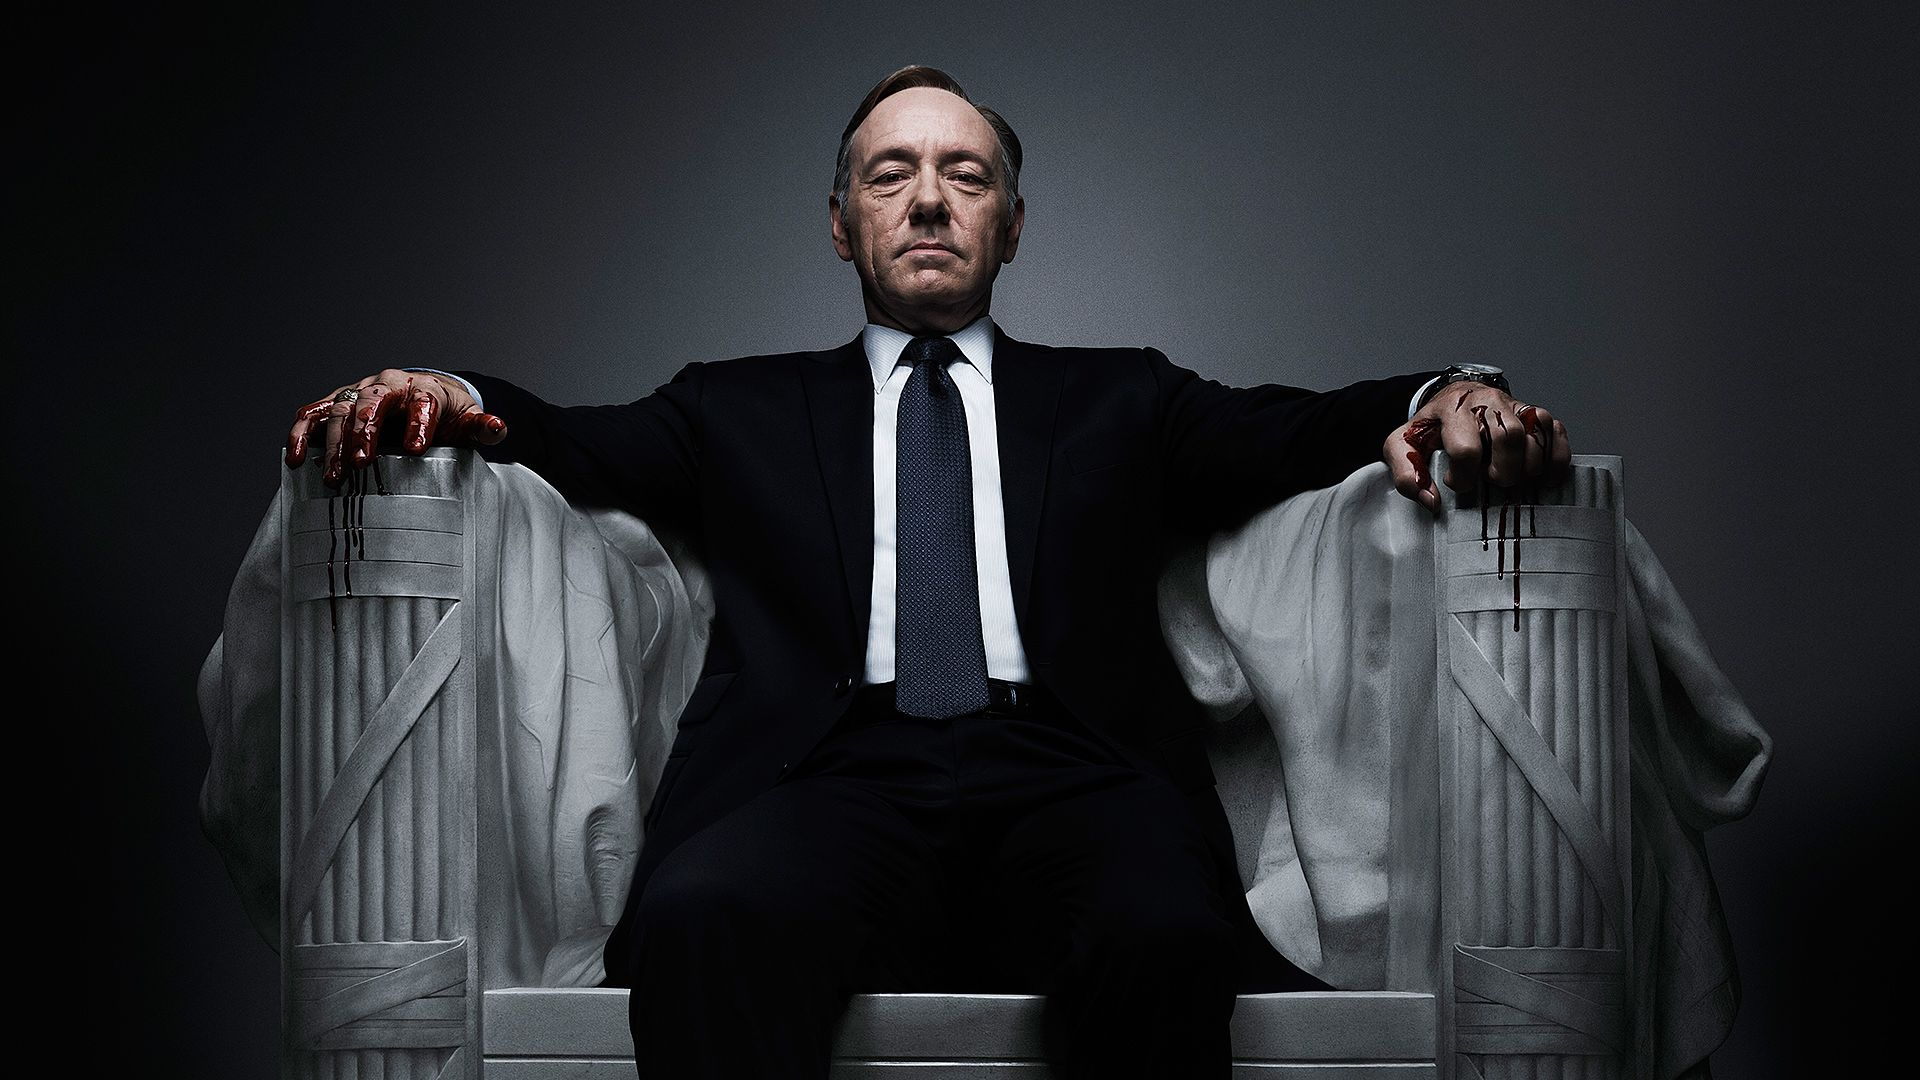 House of Cards Season 5 Promo 1